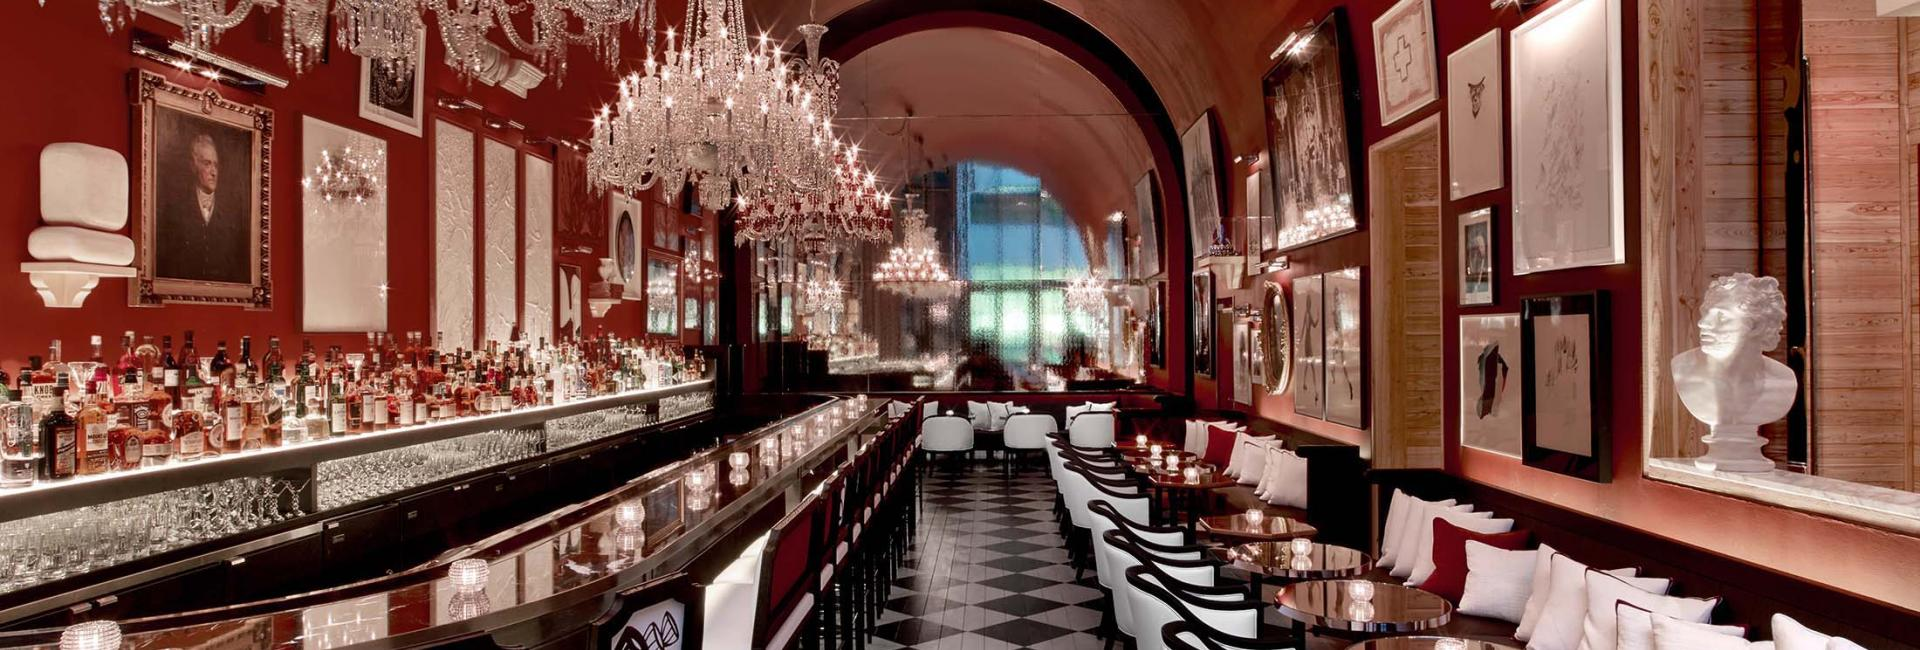 The lavishly decorated bar at Baccarat Hotel